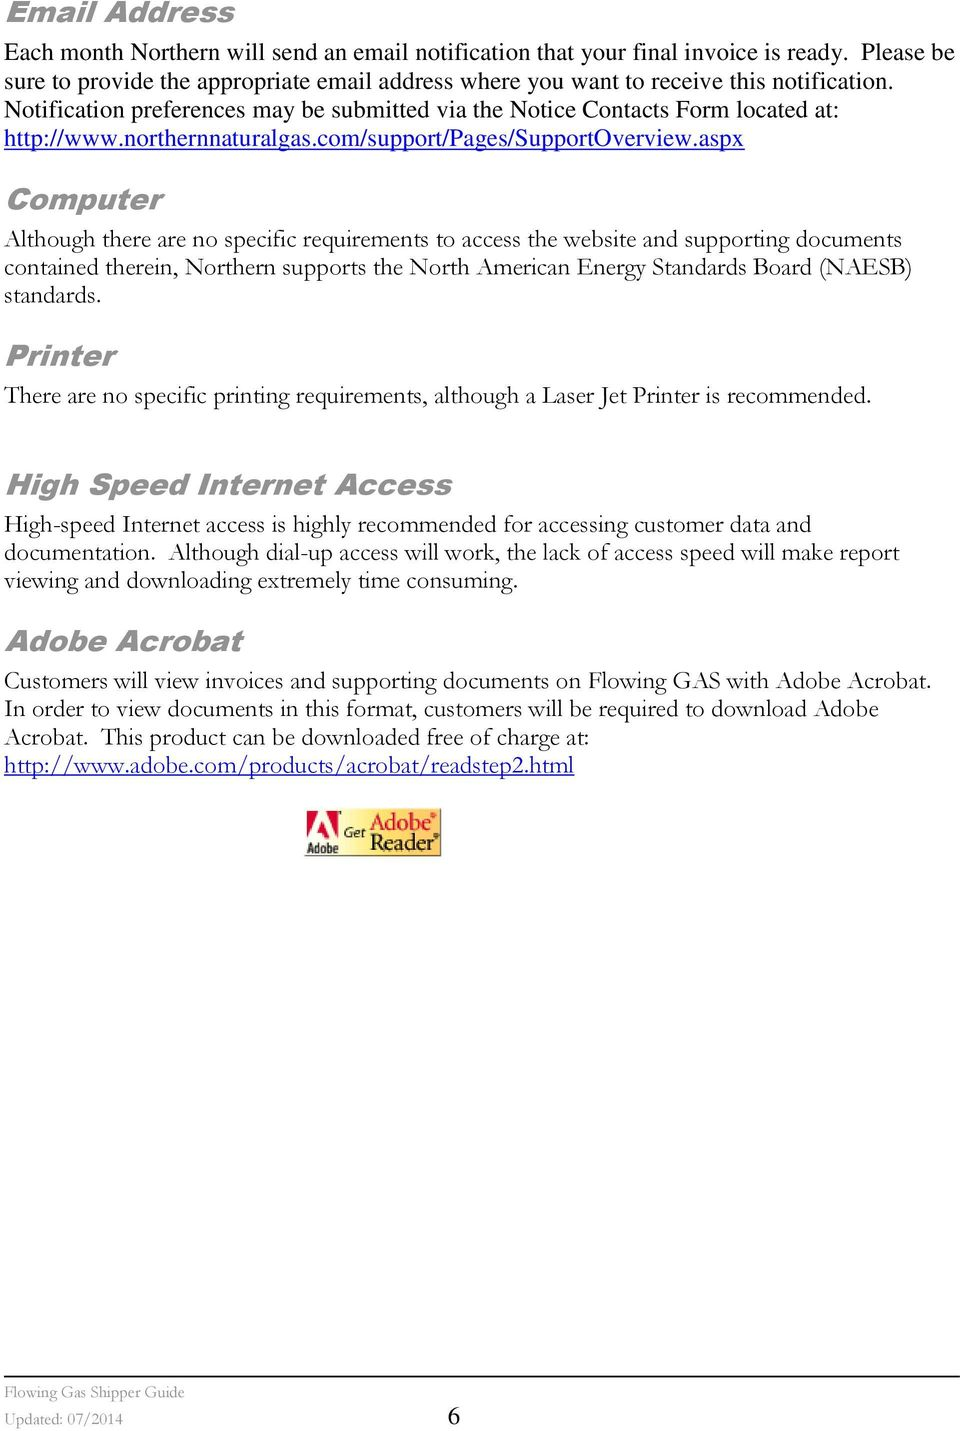 aspx Computer Although there are no specific requirements to access the website and supporting documents contained therein, Northern supports the North American Energy Standards Board (NAESB)